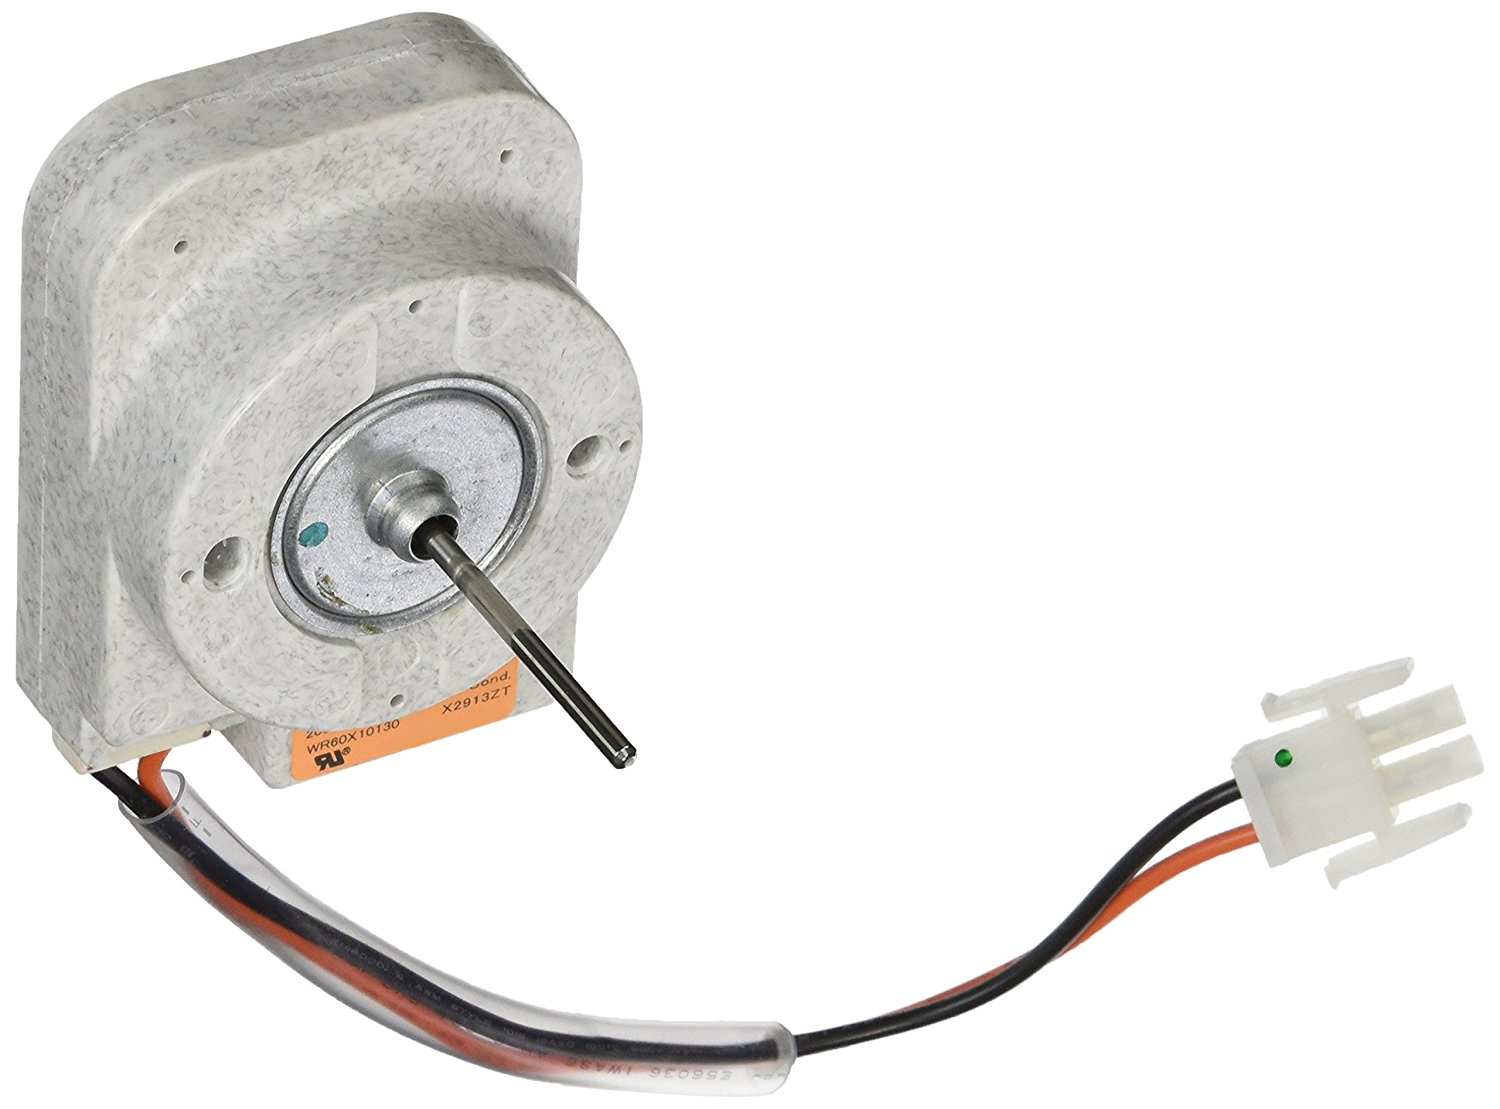 General Electric Fan Motor Wiring Diagram Online Capacitor Besides 3 Phase Diagrams Cheap Find Control